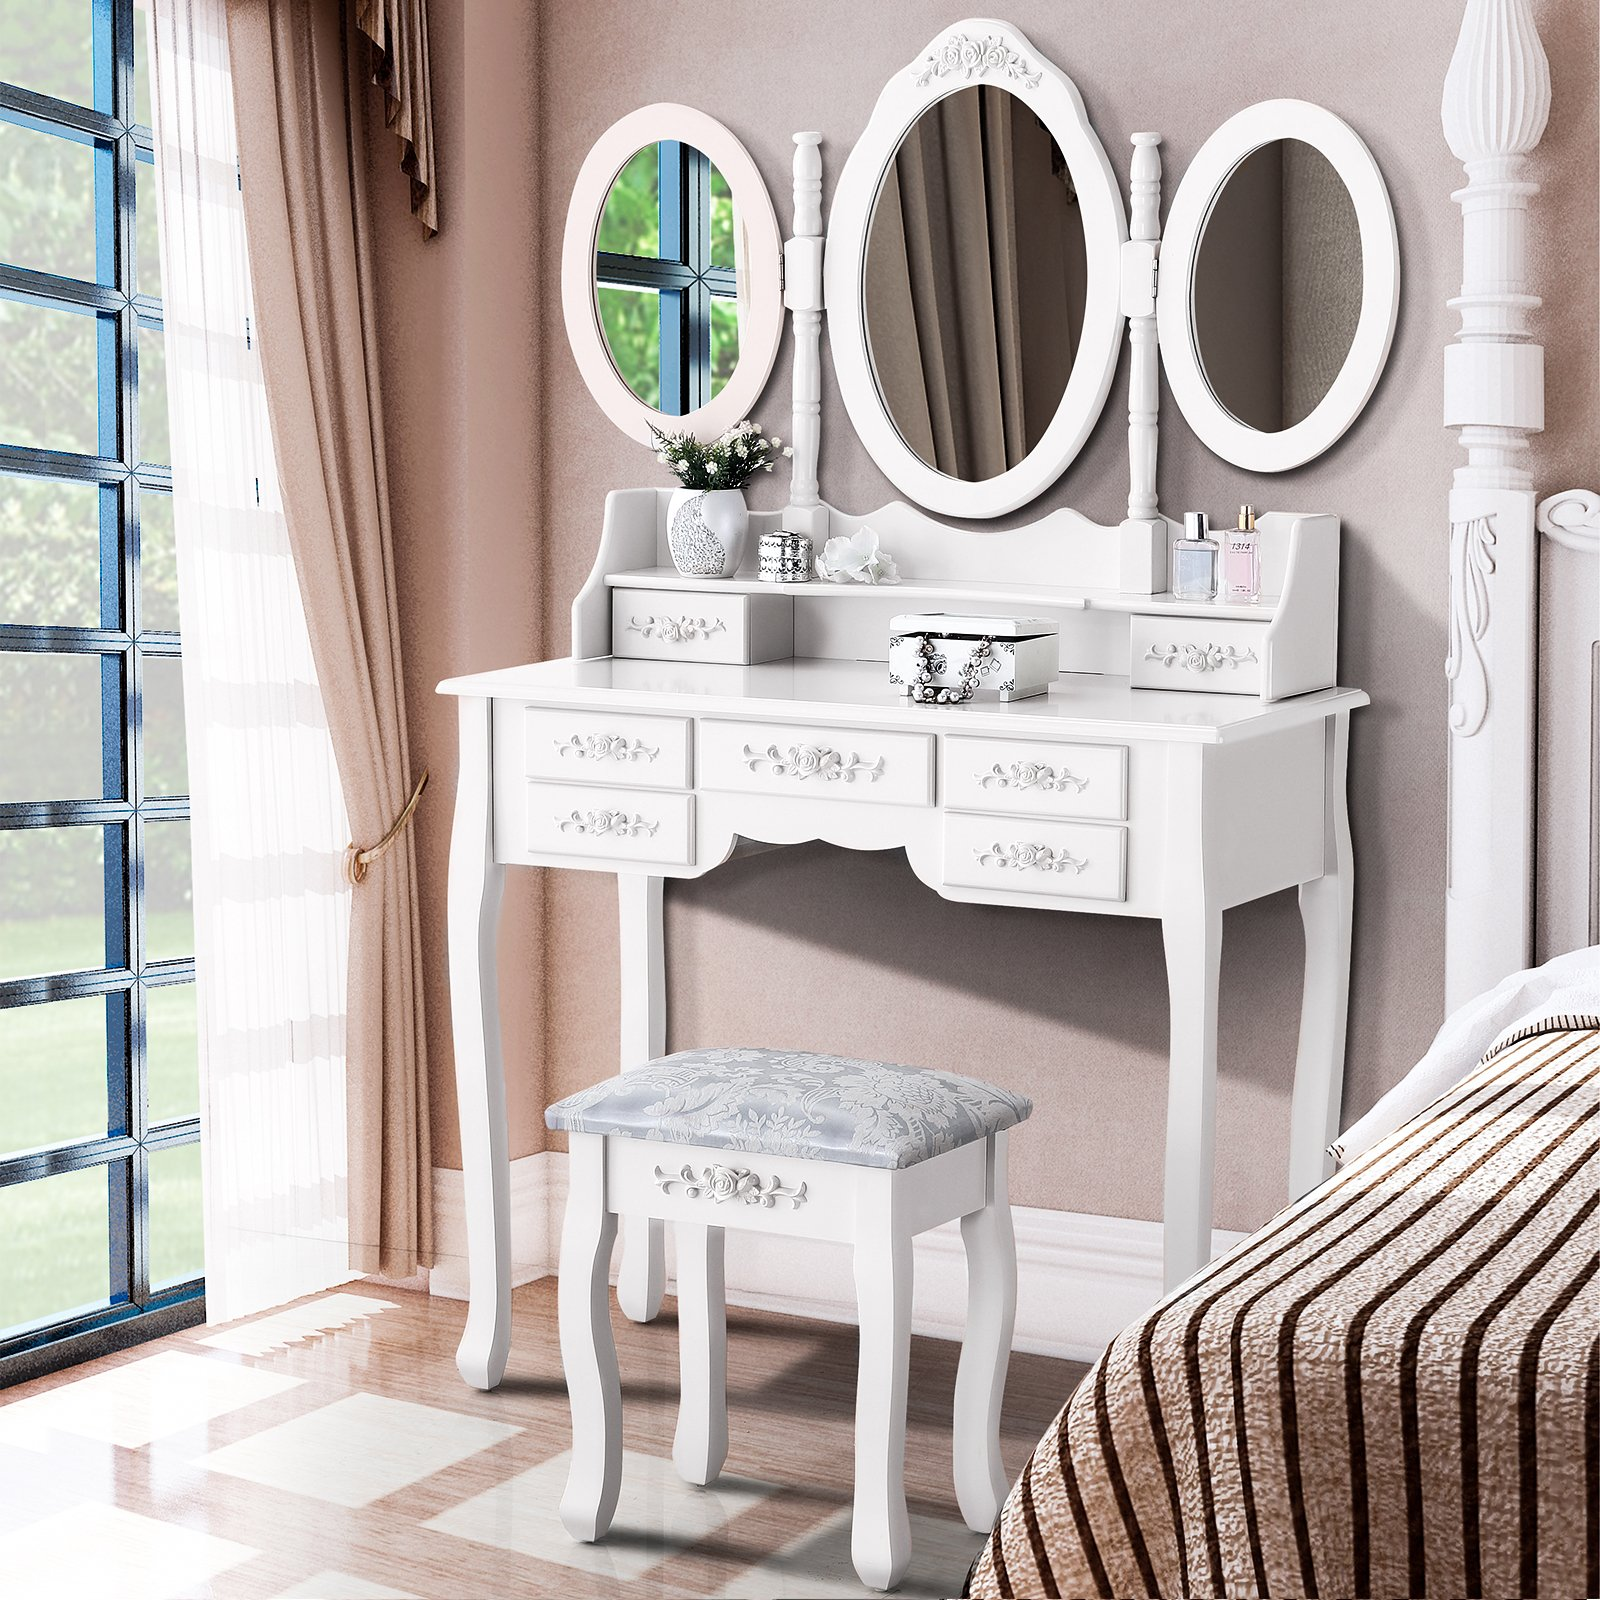 Mecor Makeup Vanity with 7 Drawers,Vanity Table Set w/Tri-fold Mirror Girls Women Wood Dressing Table Cushioned Stool Bedroom Furniture White by mecor